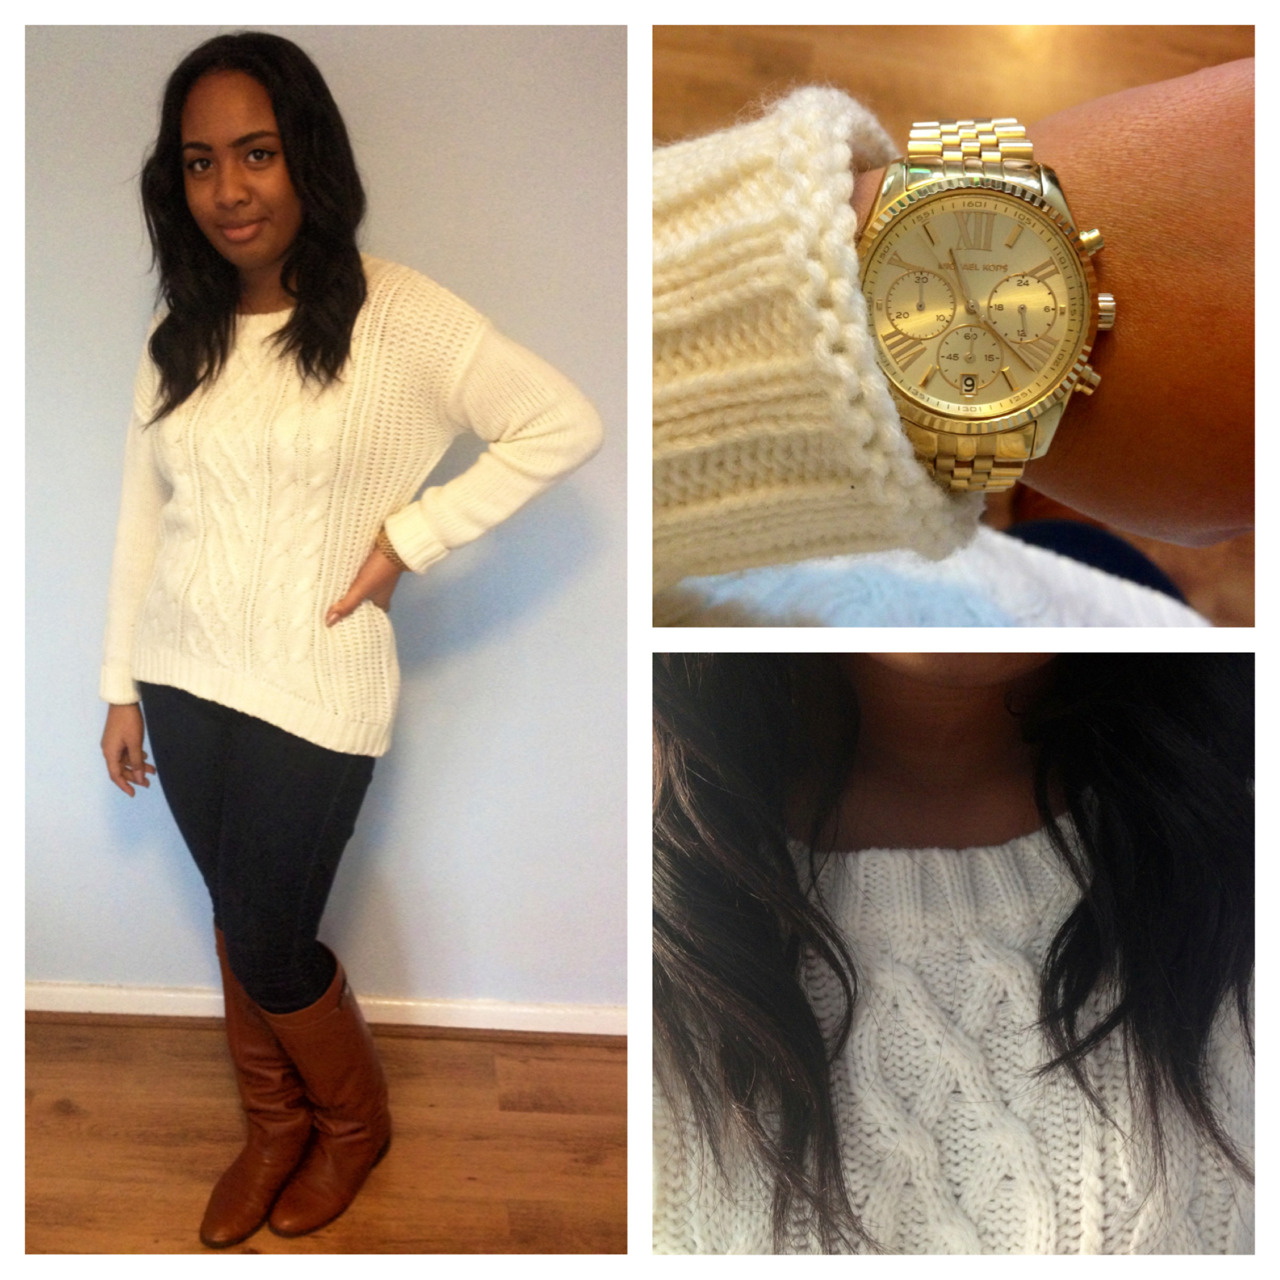 #OOTD Oh how I love a good ol' cable knit! the perfect thing to wear for a chilly day in London. I wore mine with a pair of jeans, riding boots, nicely topped off with a gold watch - Casual outfit, with timeless features. Jumper - Primark, jeans - New Look, riding boots - ZARA, watch by Michael Kors